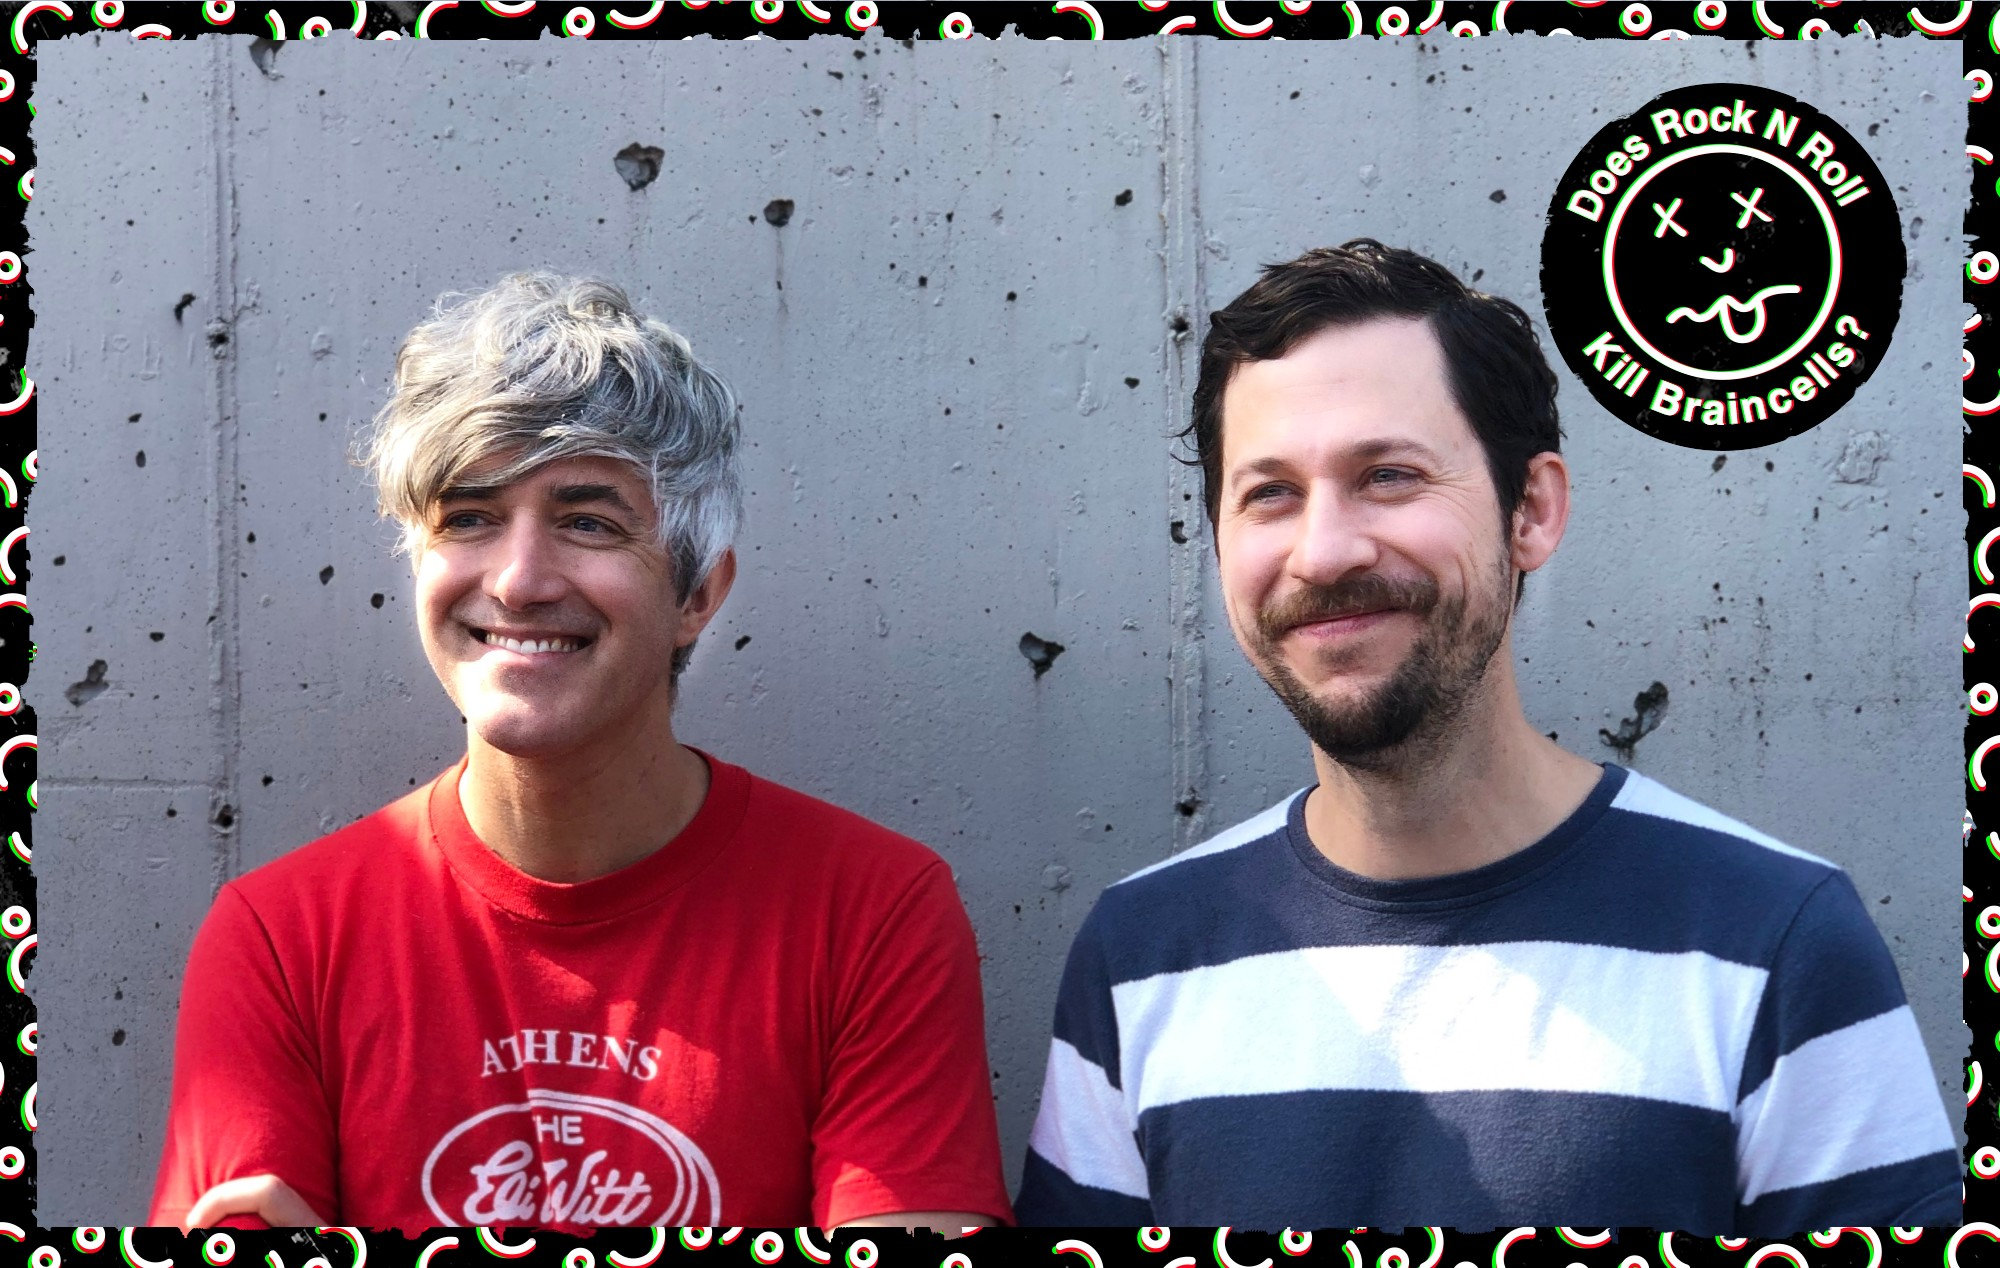 Does Rock 'N' Roll Kill Braincells?! – Keith Murray, We Are Scientists